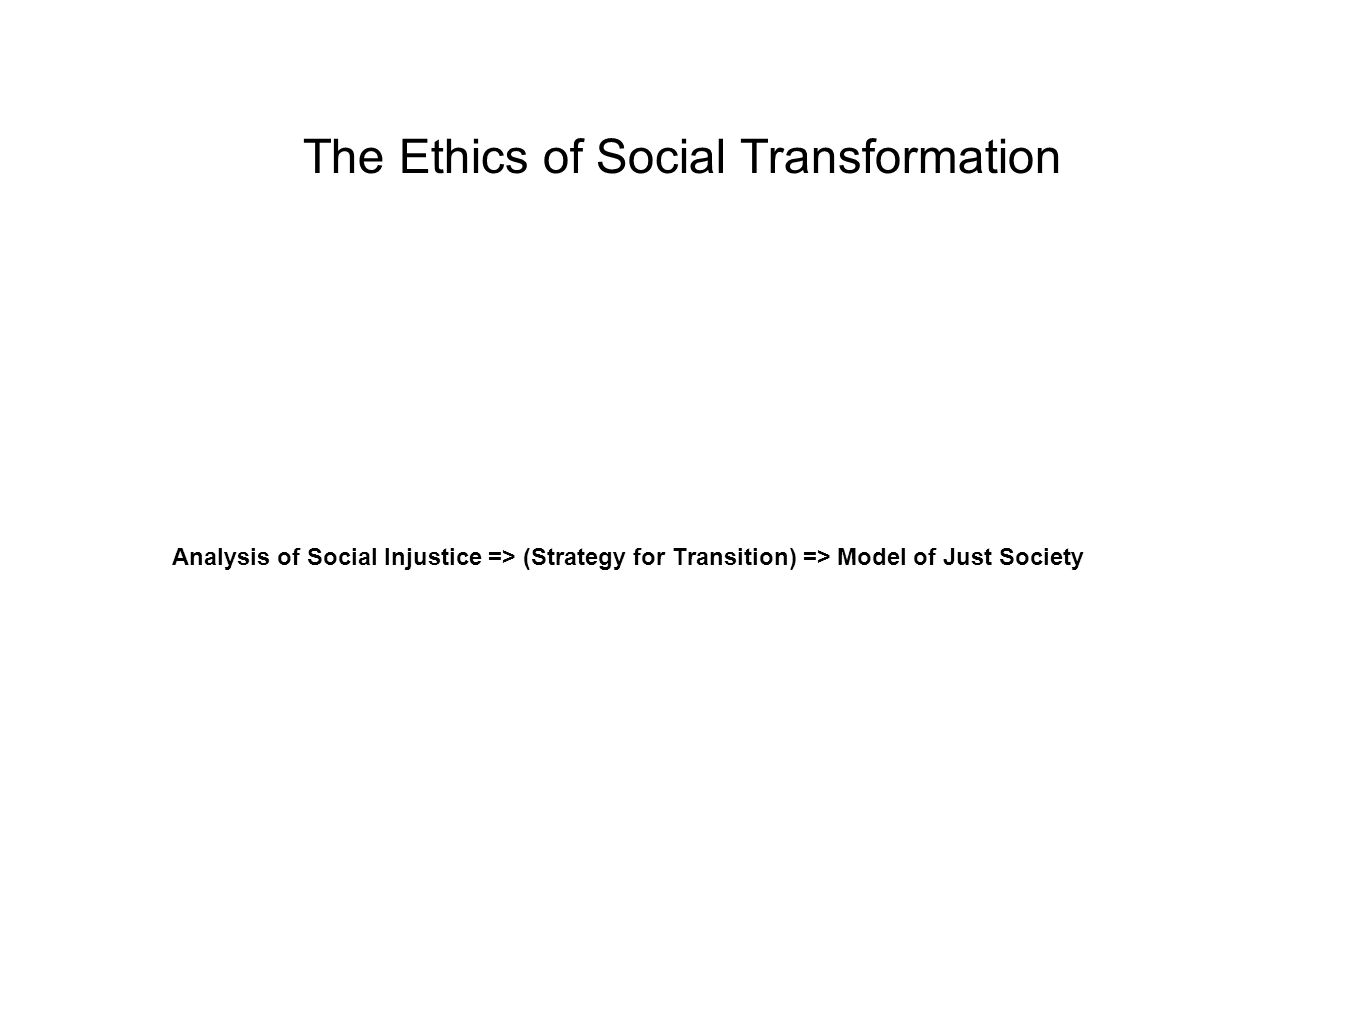 The Ethics of Social Transformation